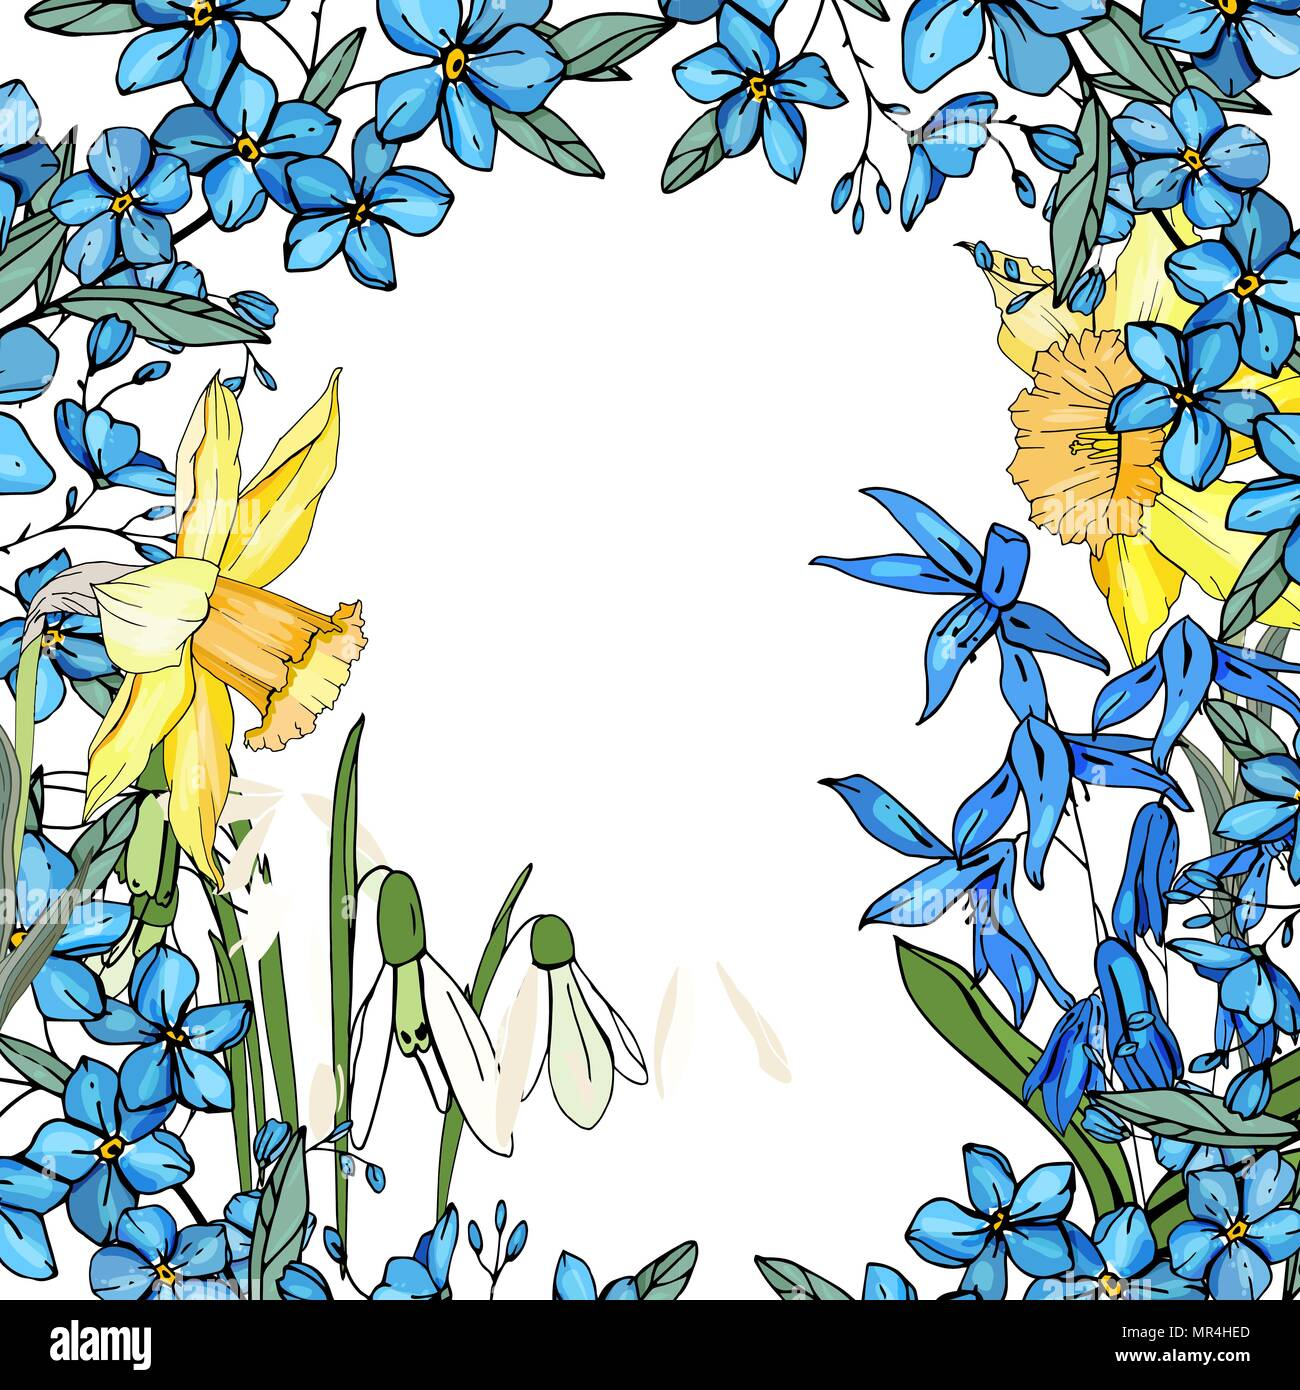 Frame With Spring Flowers Daffodils And And Small Blue Flowers Stock